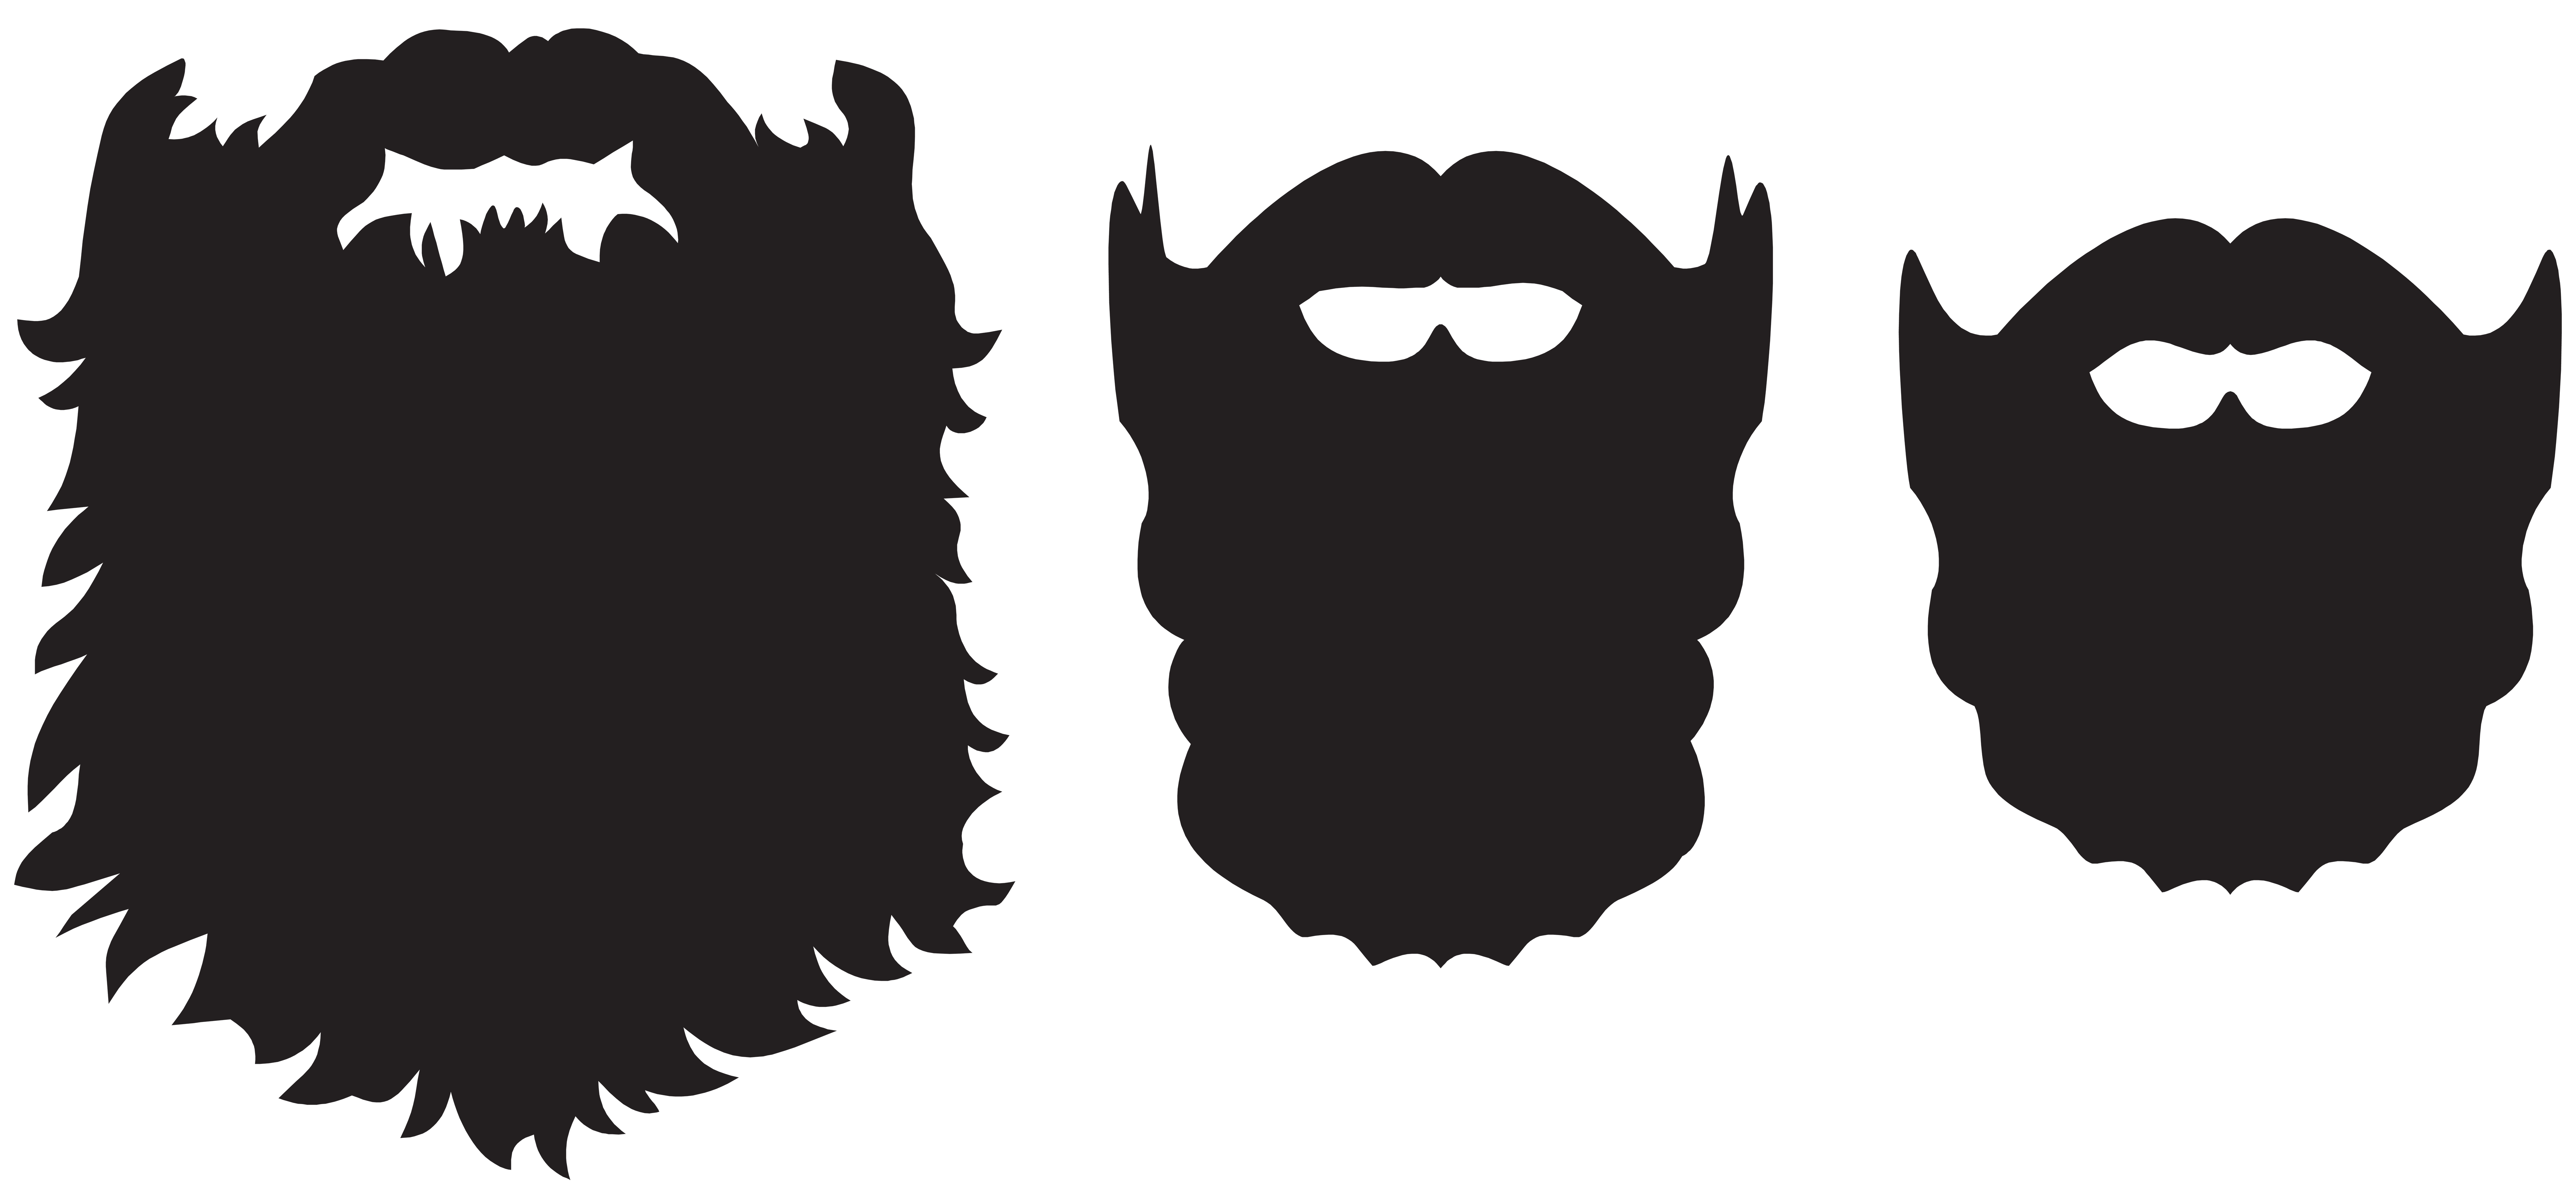 Beard Set Png Clip Art Image Gallery Yopriceville High Quality Images And Transparent Png Free Clipart Art Images Clip Art Free Clip Art